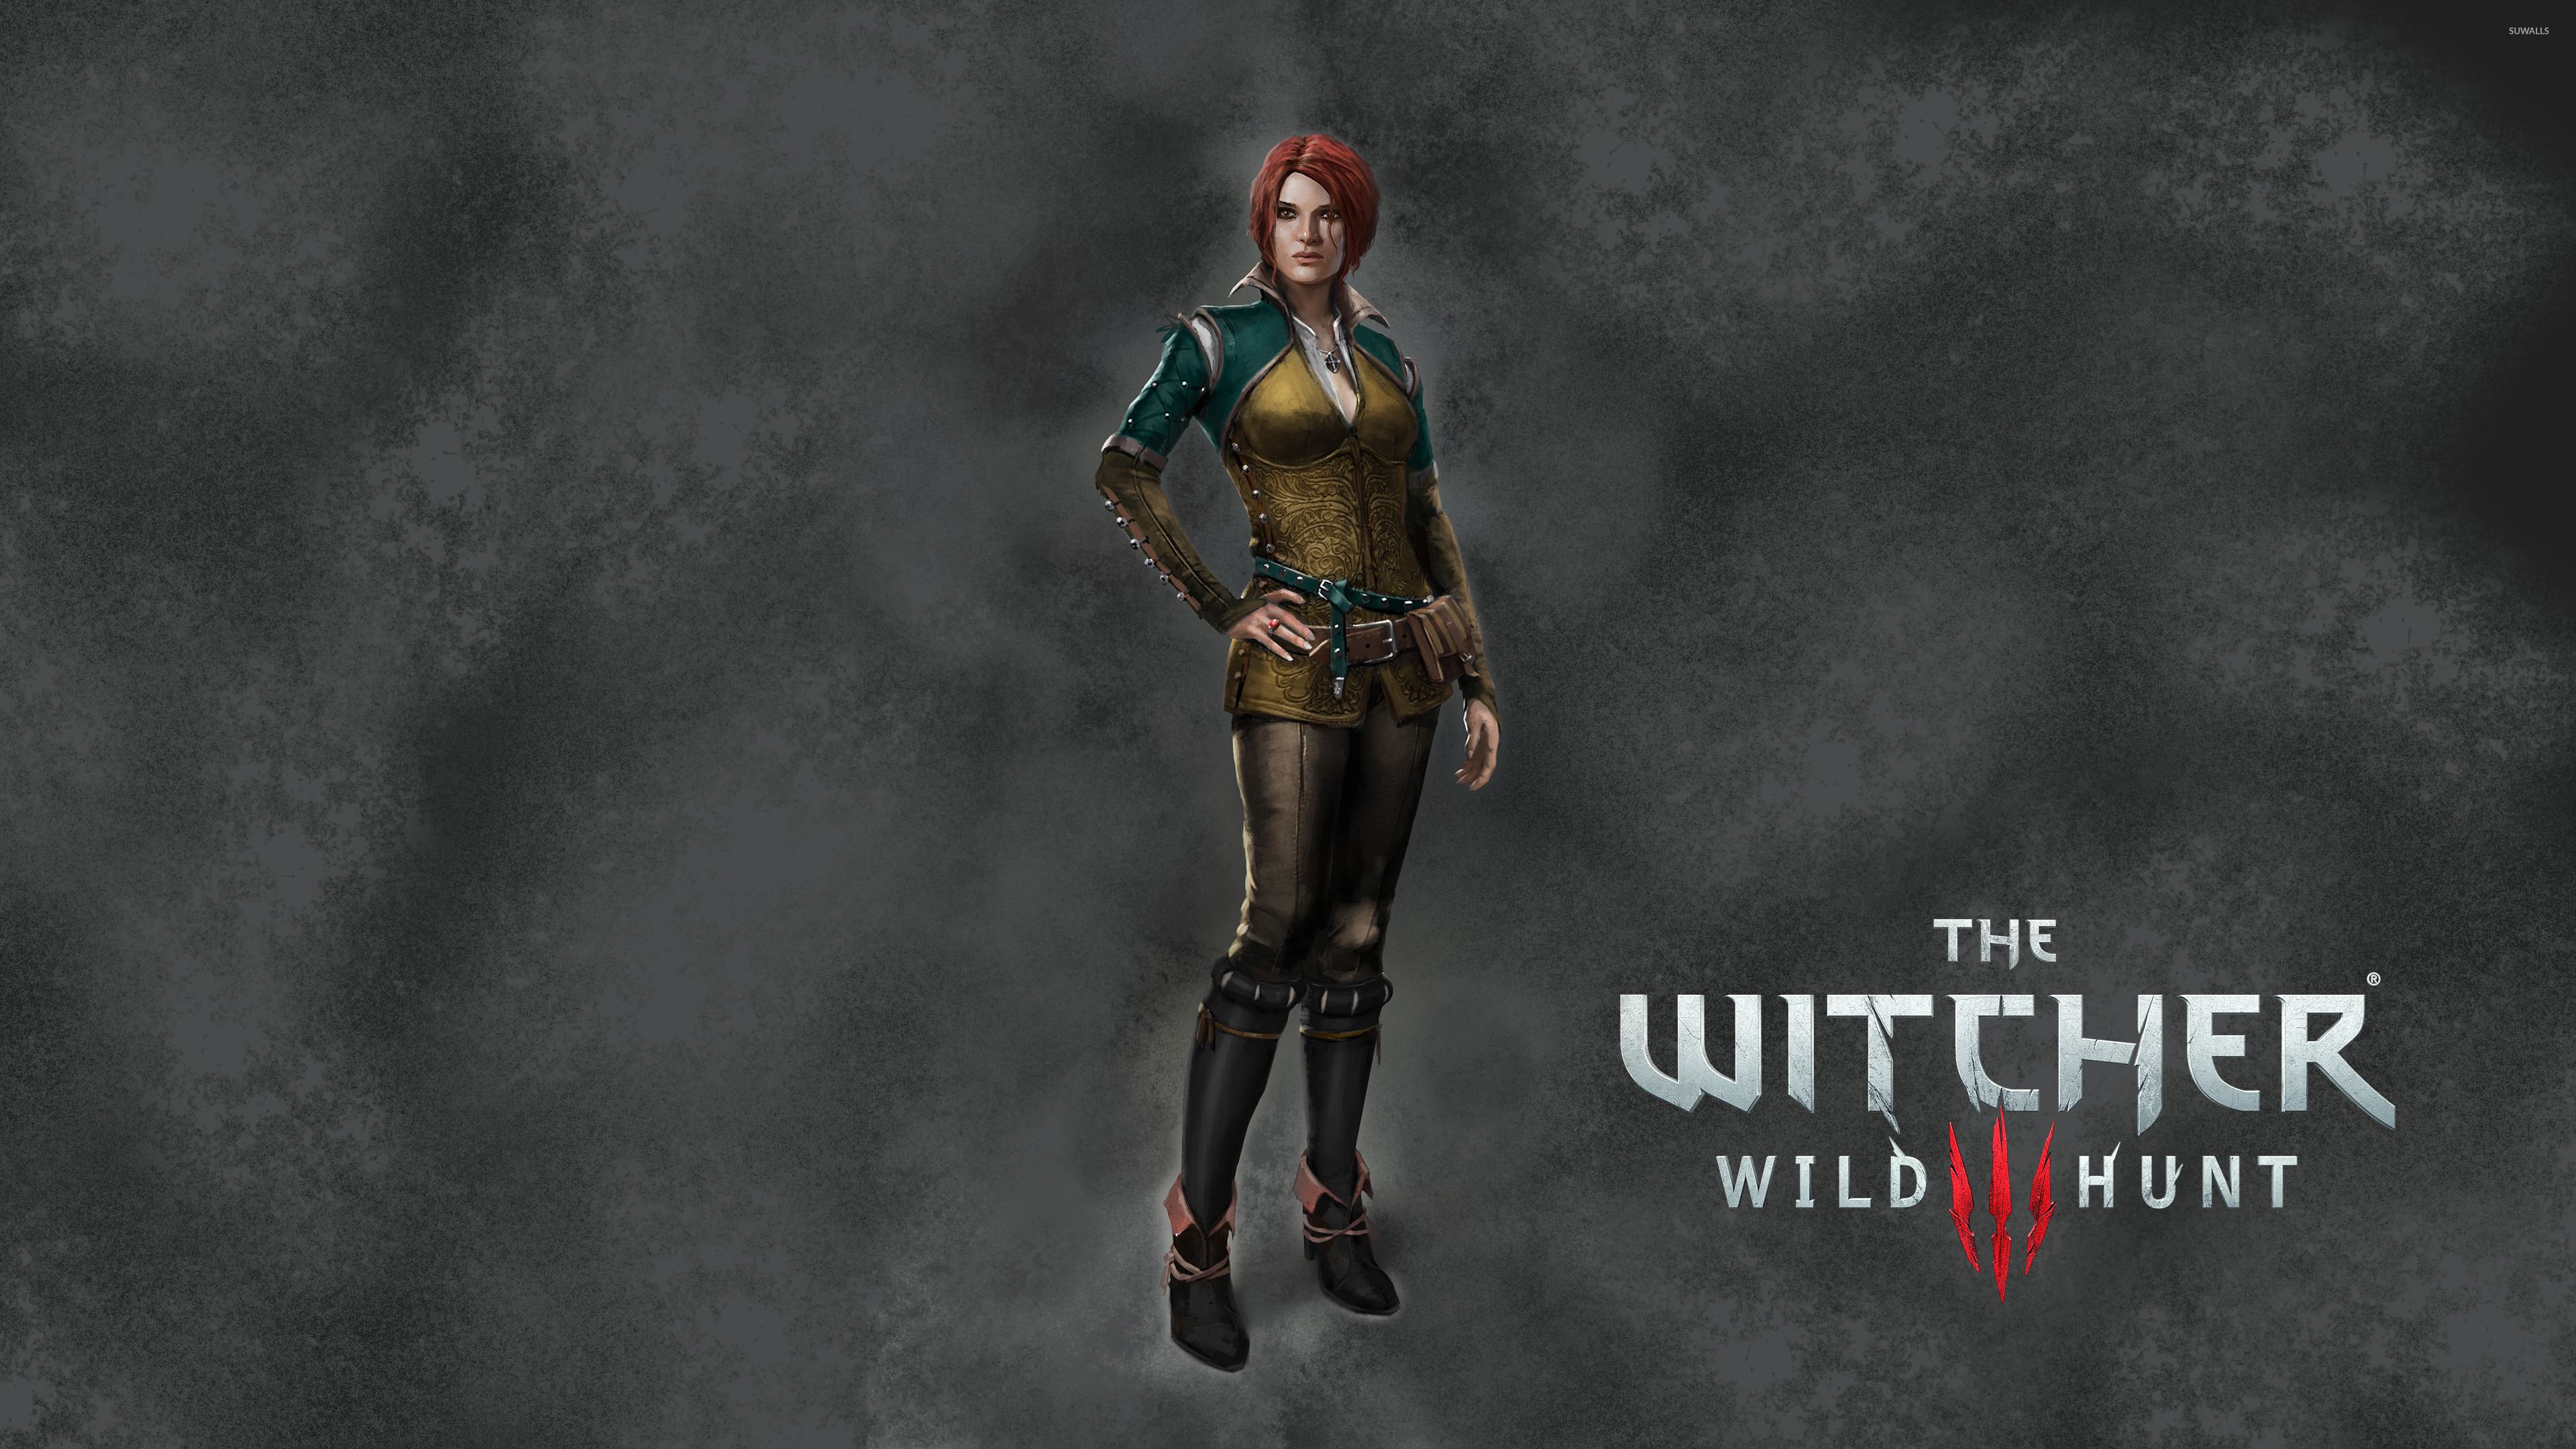 Triss Merigold In The Witcher 3 Wild Hunt Wallpaper Game